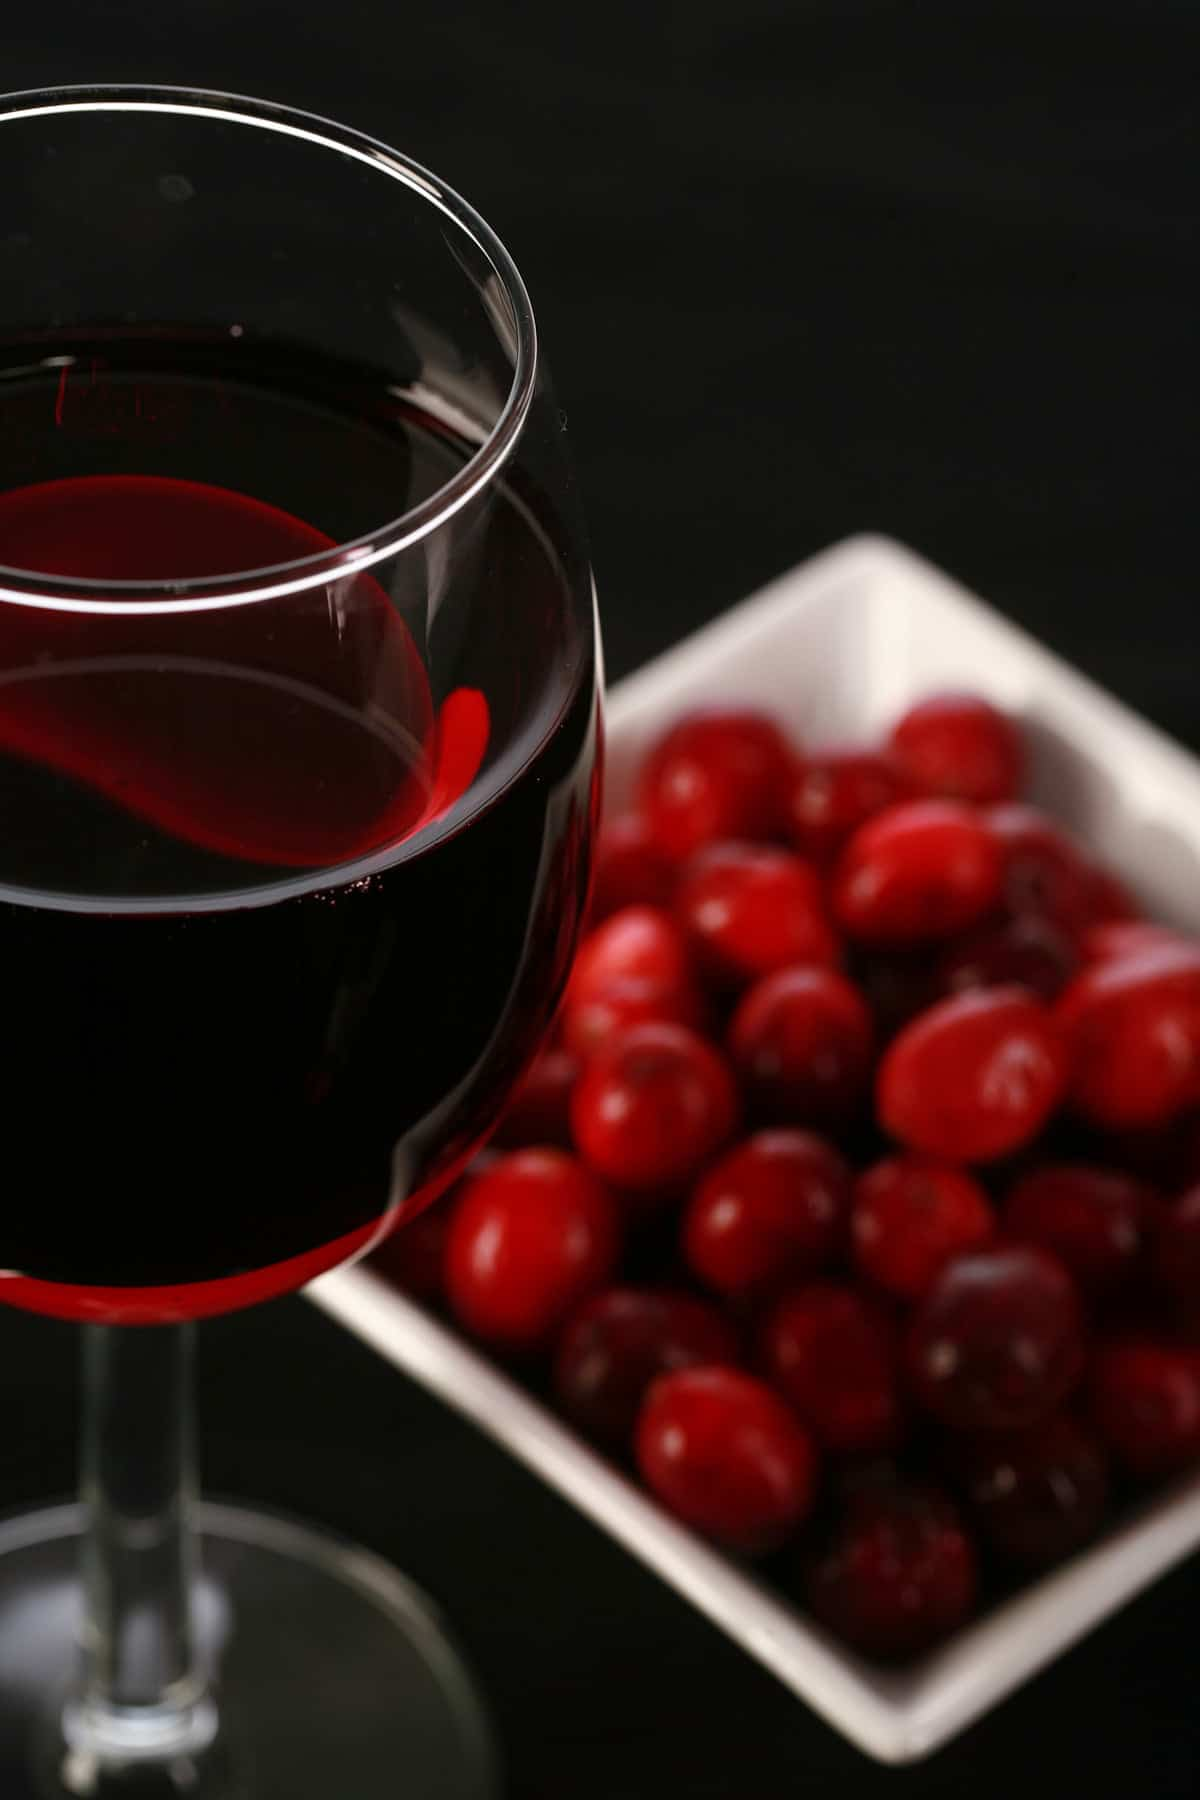 A glass of red wine is pictured next to a small bowl of fresh cranberries, against a black background.